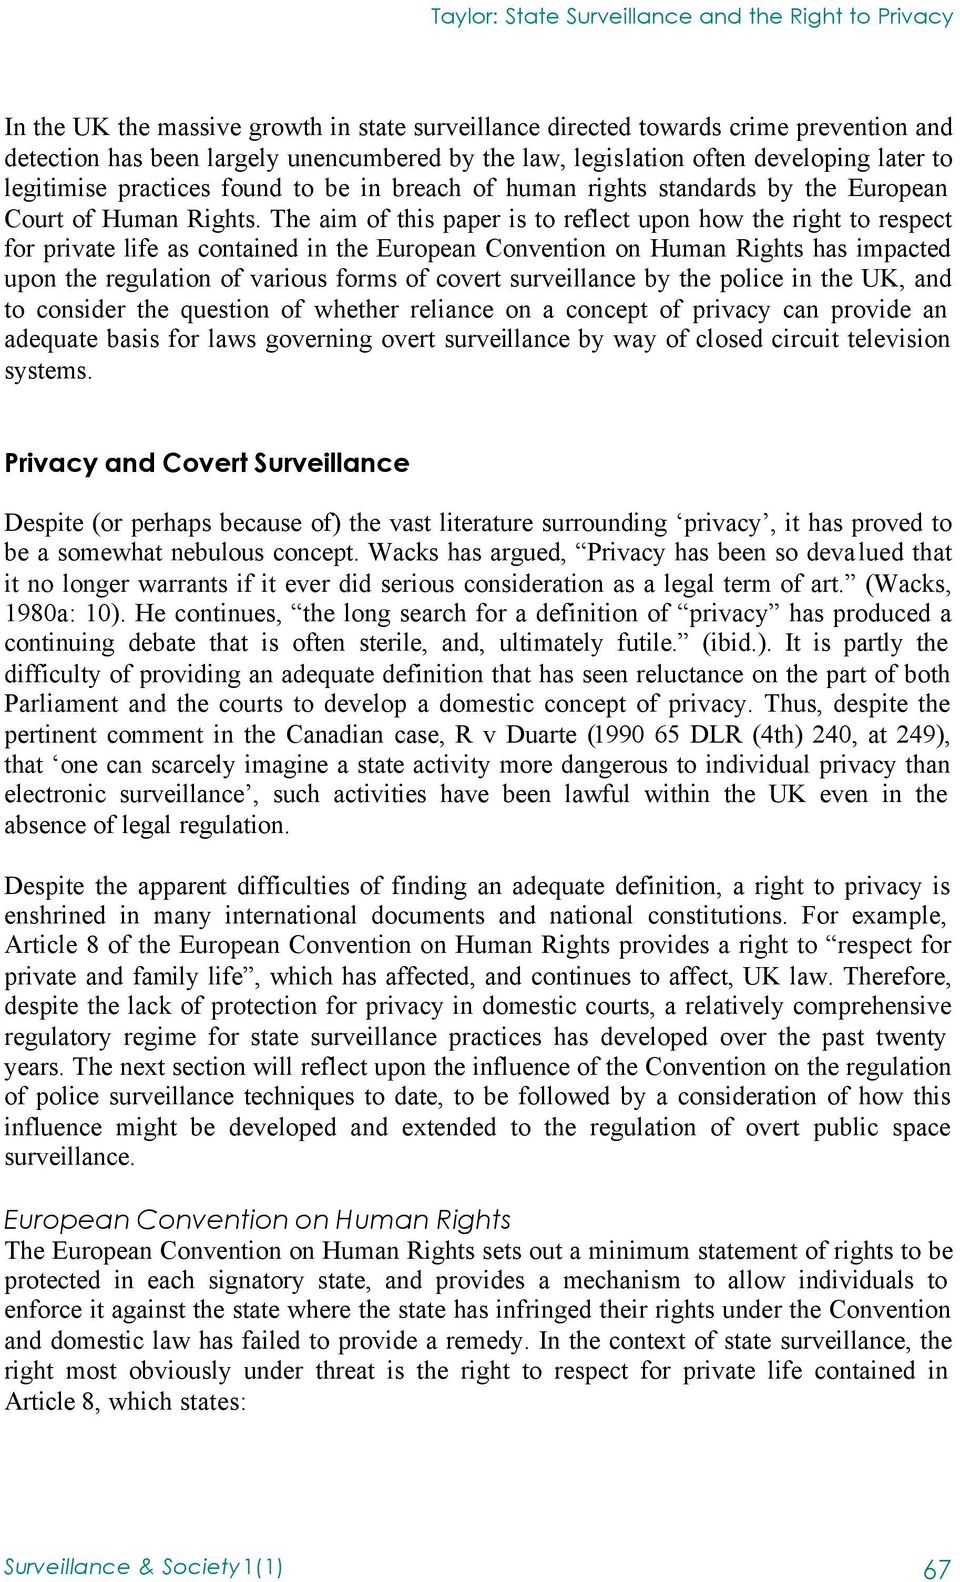 The aim of this paper is to reflect upon how the right to respect for private life as contained in the European Convention on Human Rights has impacted upon the regulation of various forms of covert